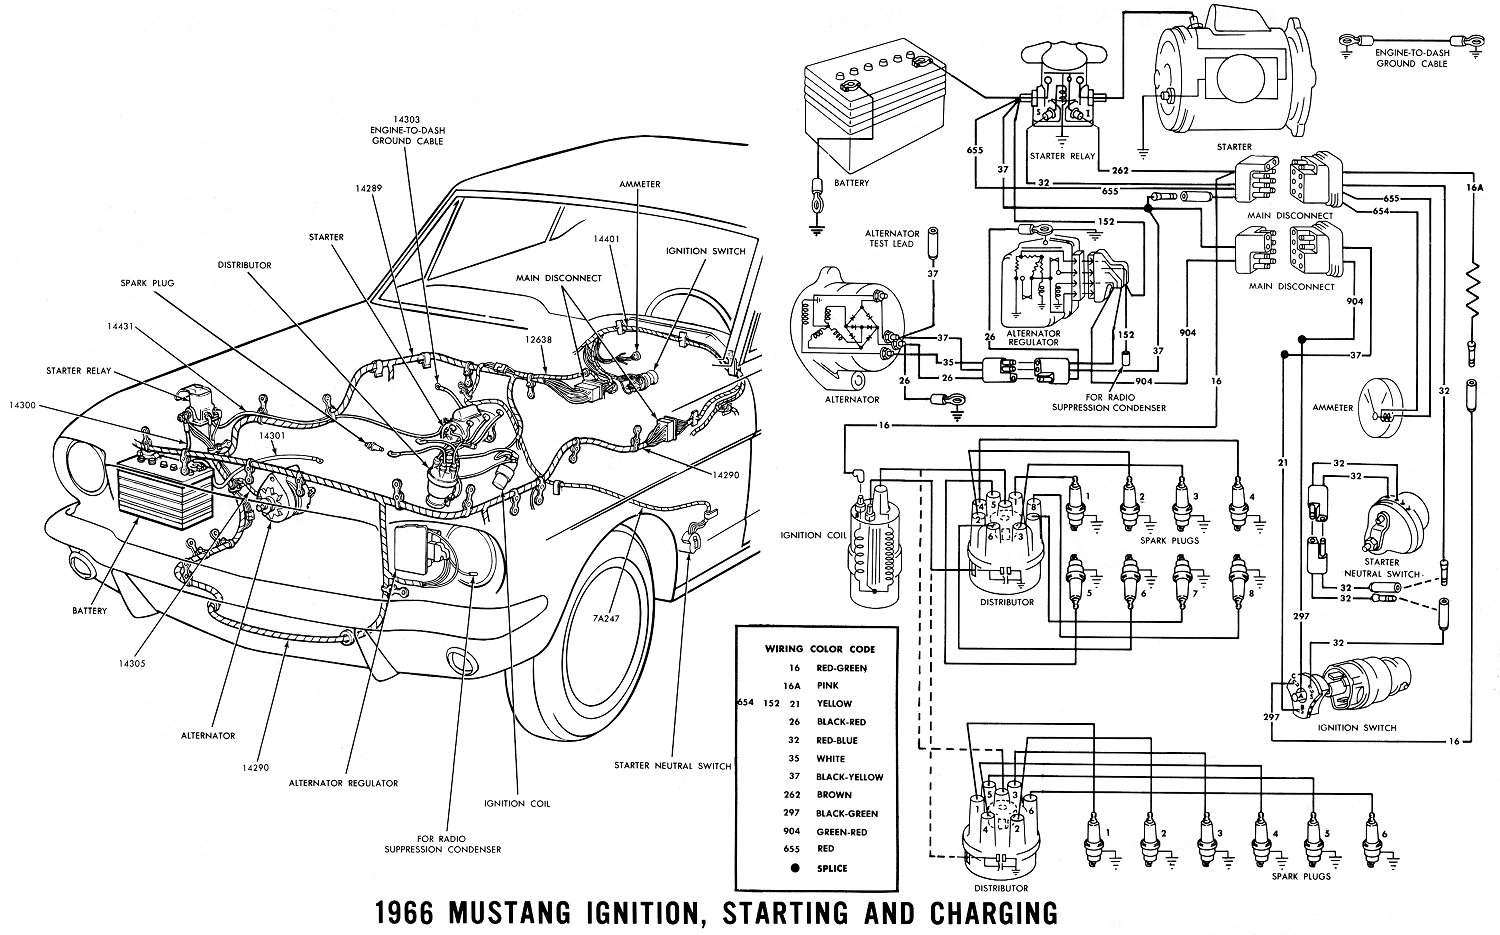 66ignit 1966 mustang wiring diagrams average joe restoration 65 mustang ignition wiring diagram at mifinder.co